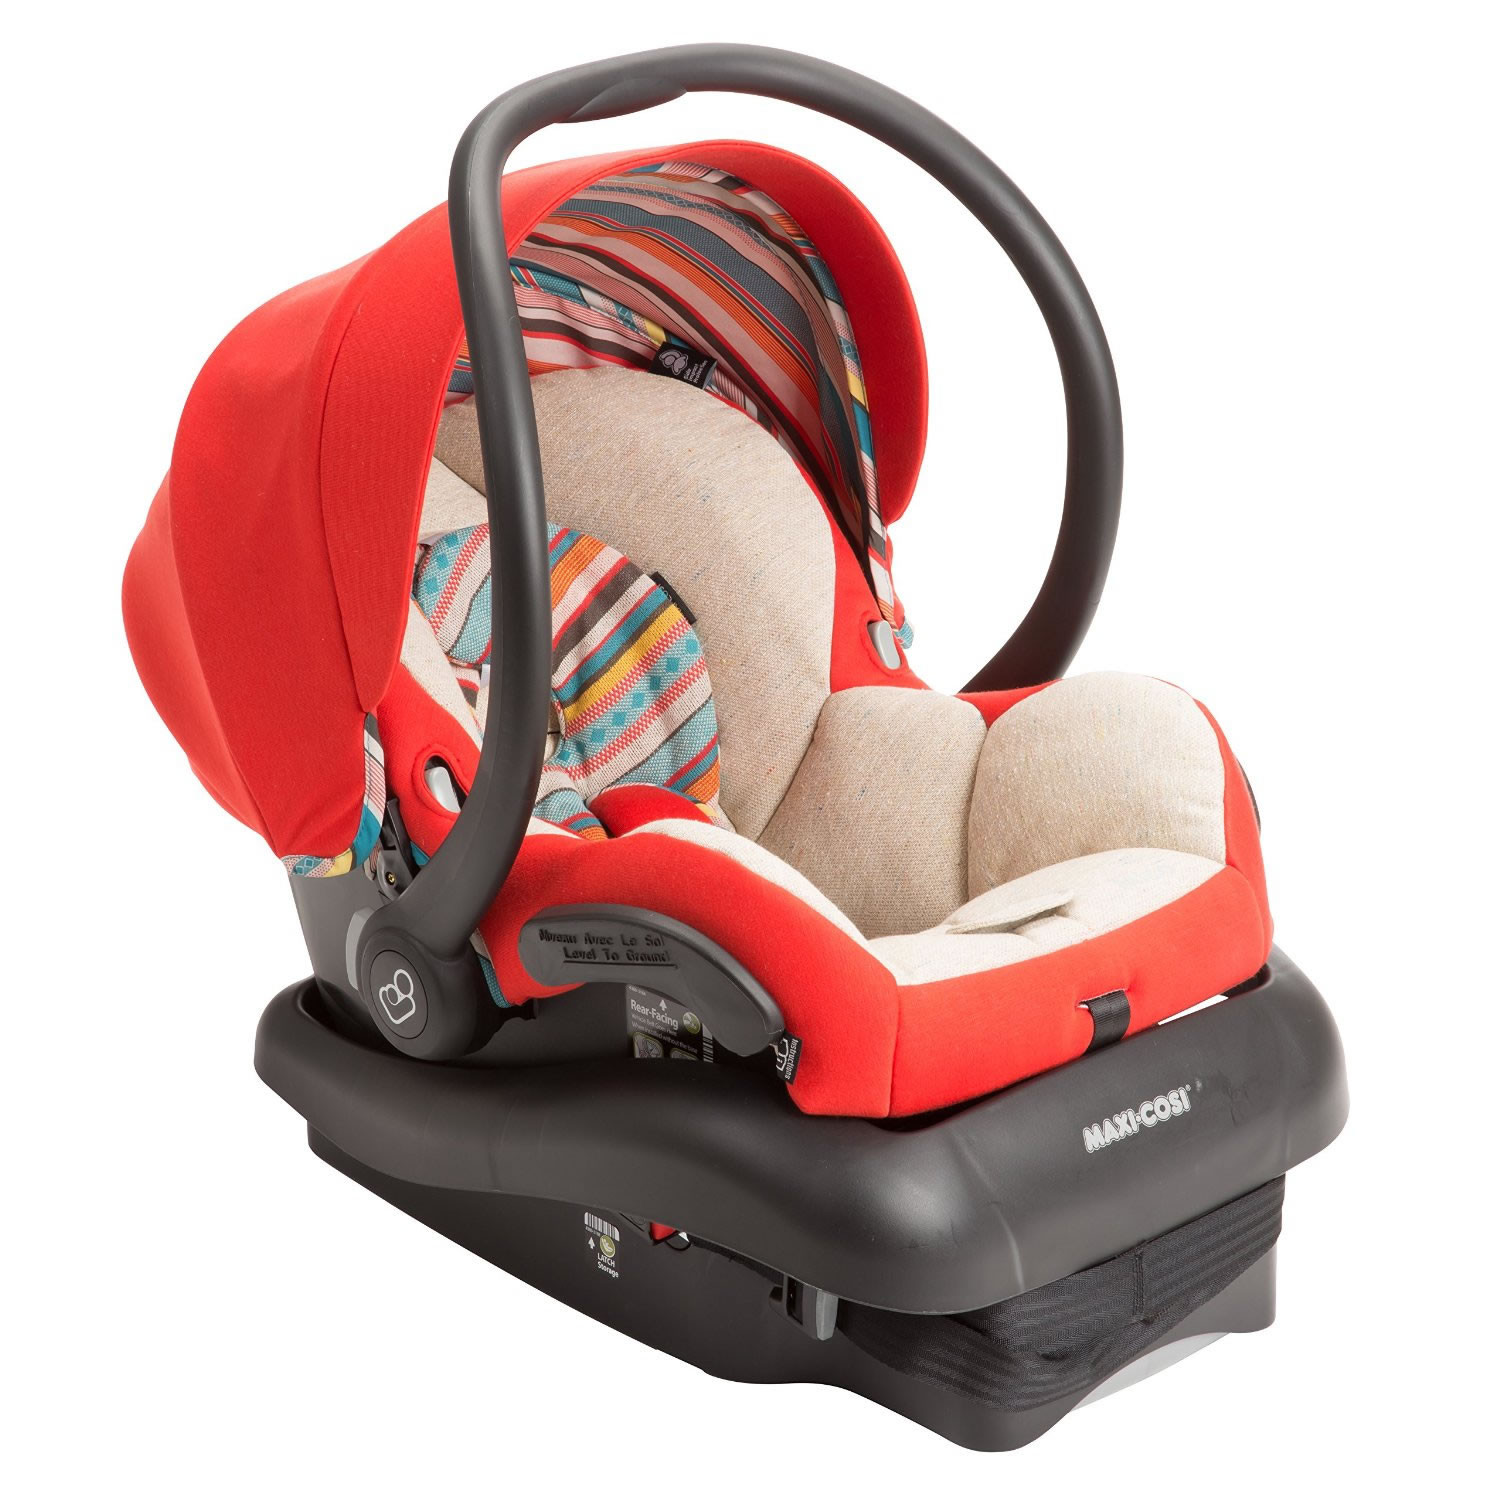 Baby Stroller, Travel System & Car Seat Reviews • In-Depth